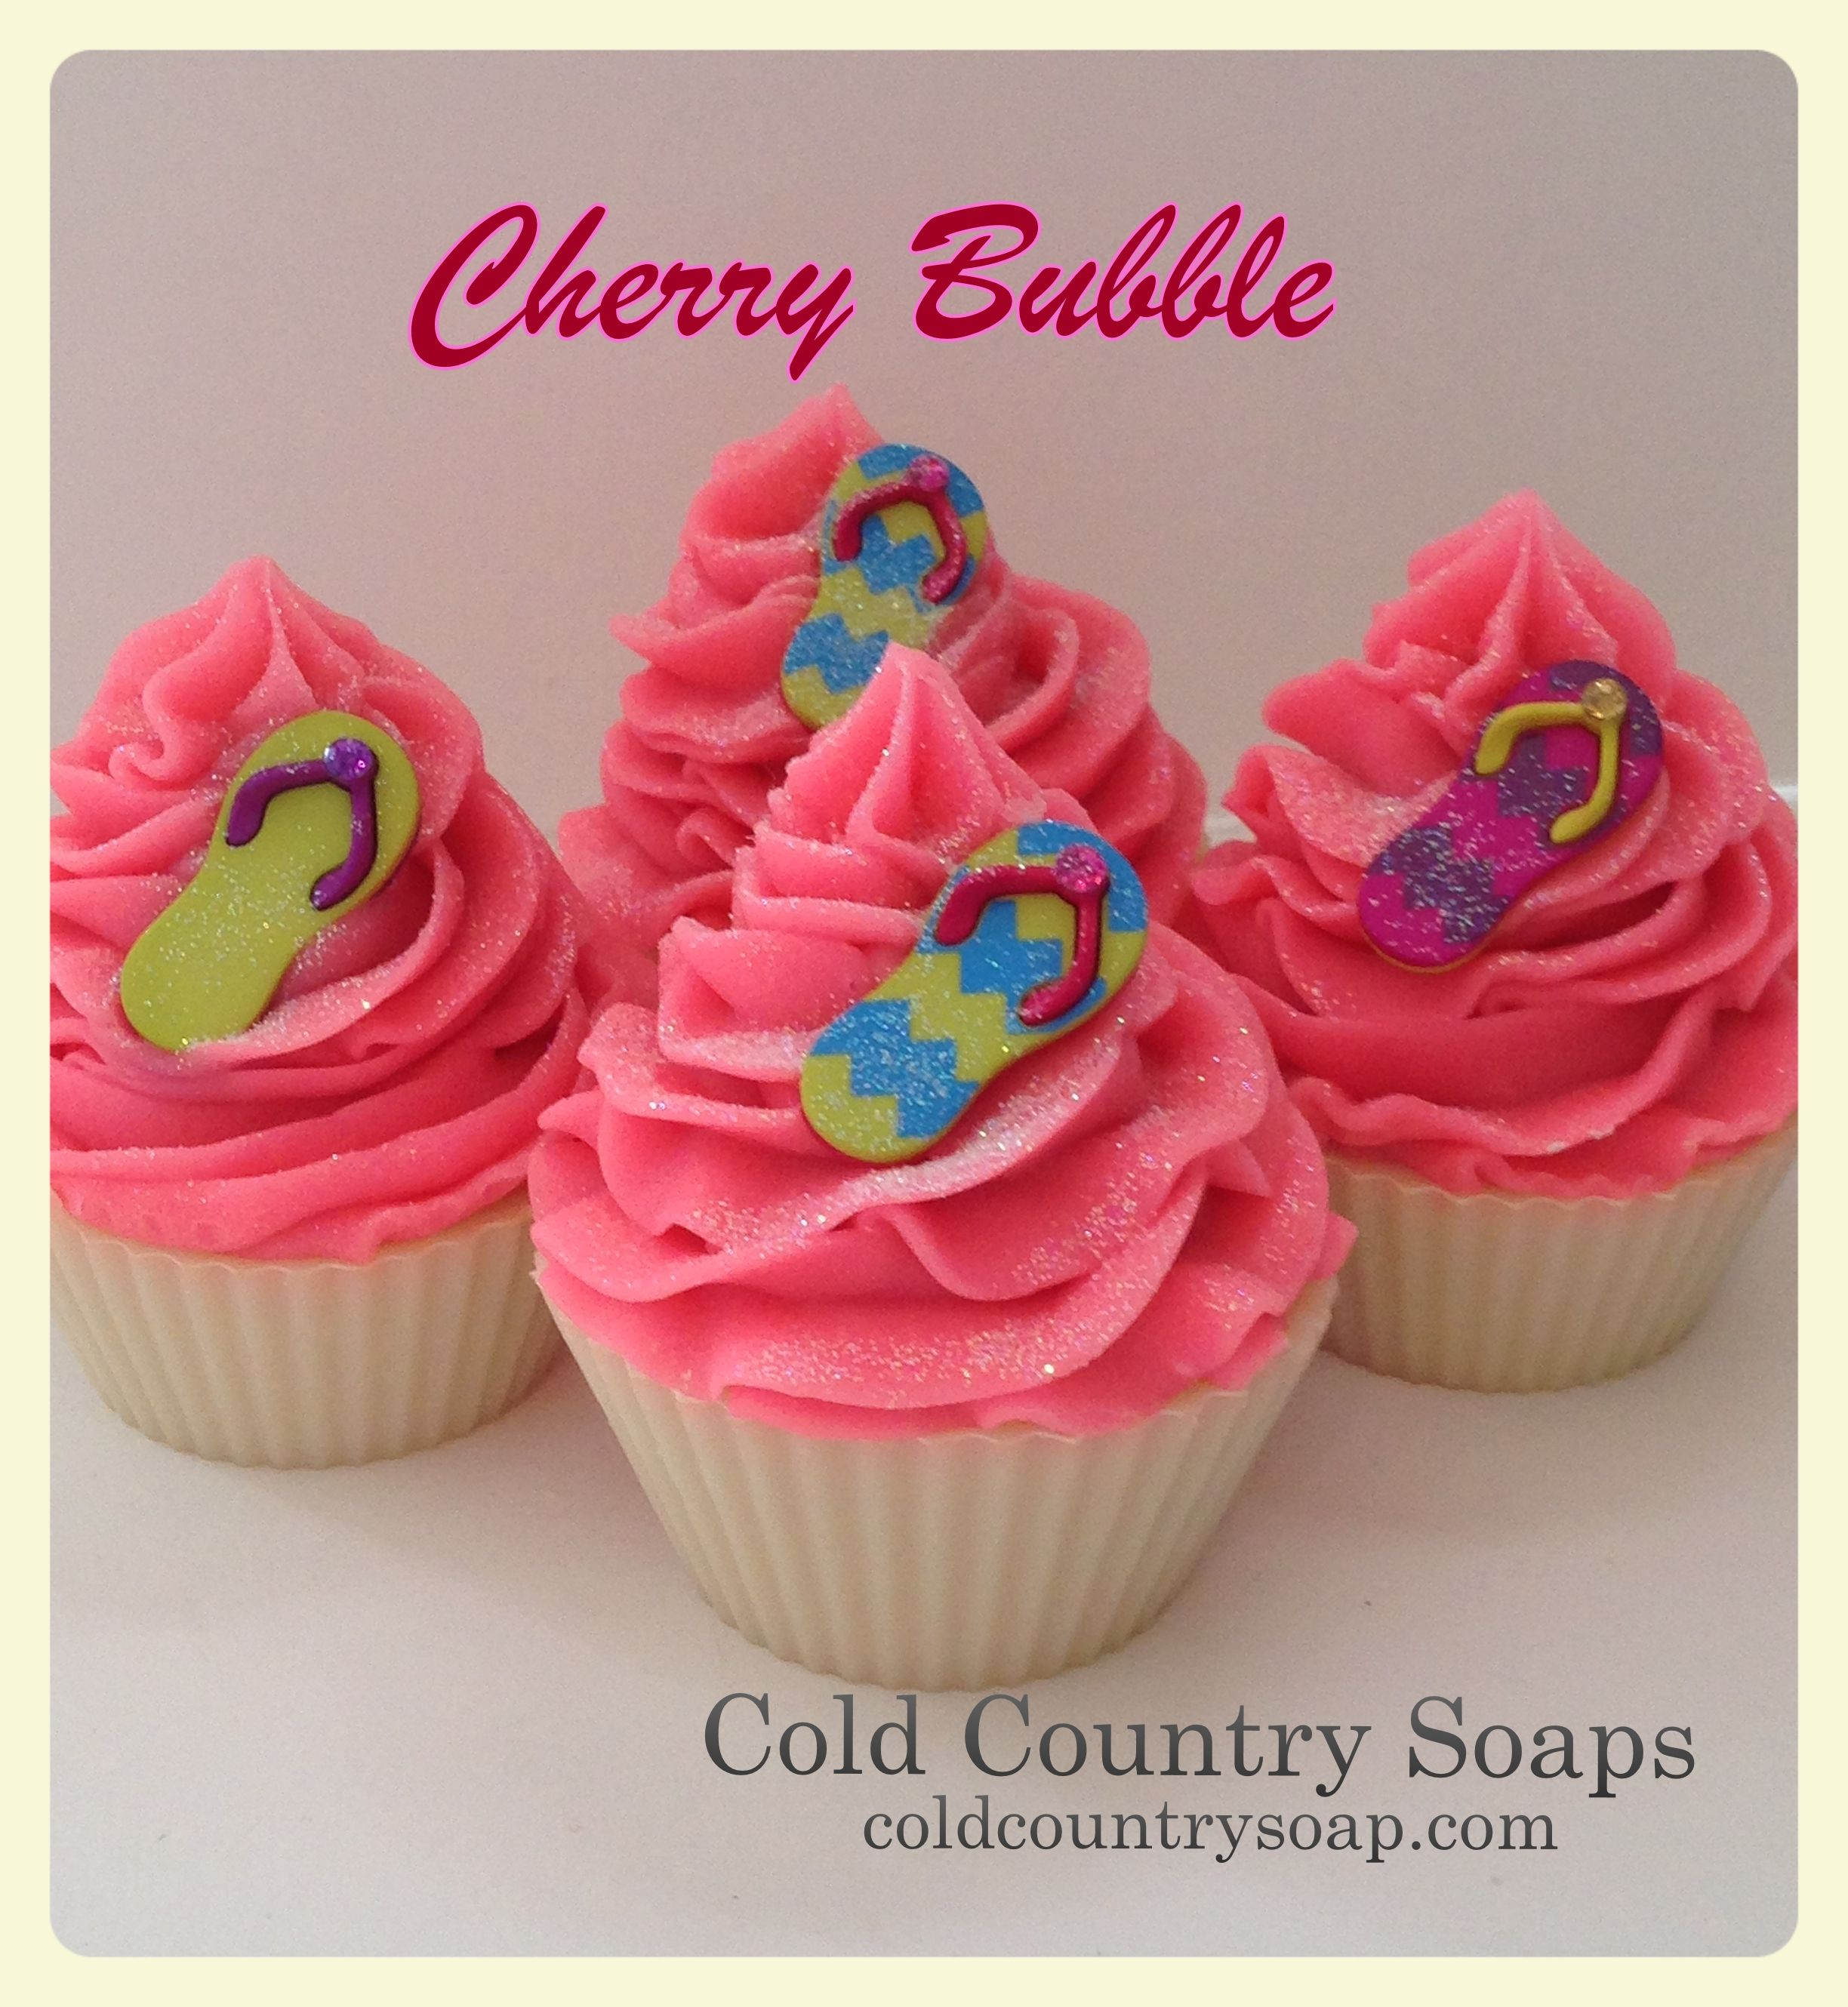 Cherry bubble cupcake soaps with a summer touch http